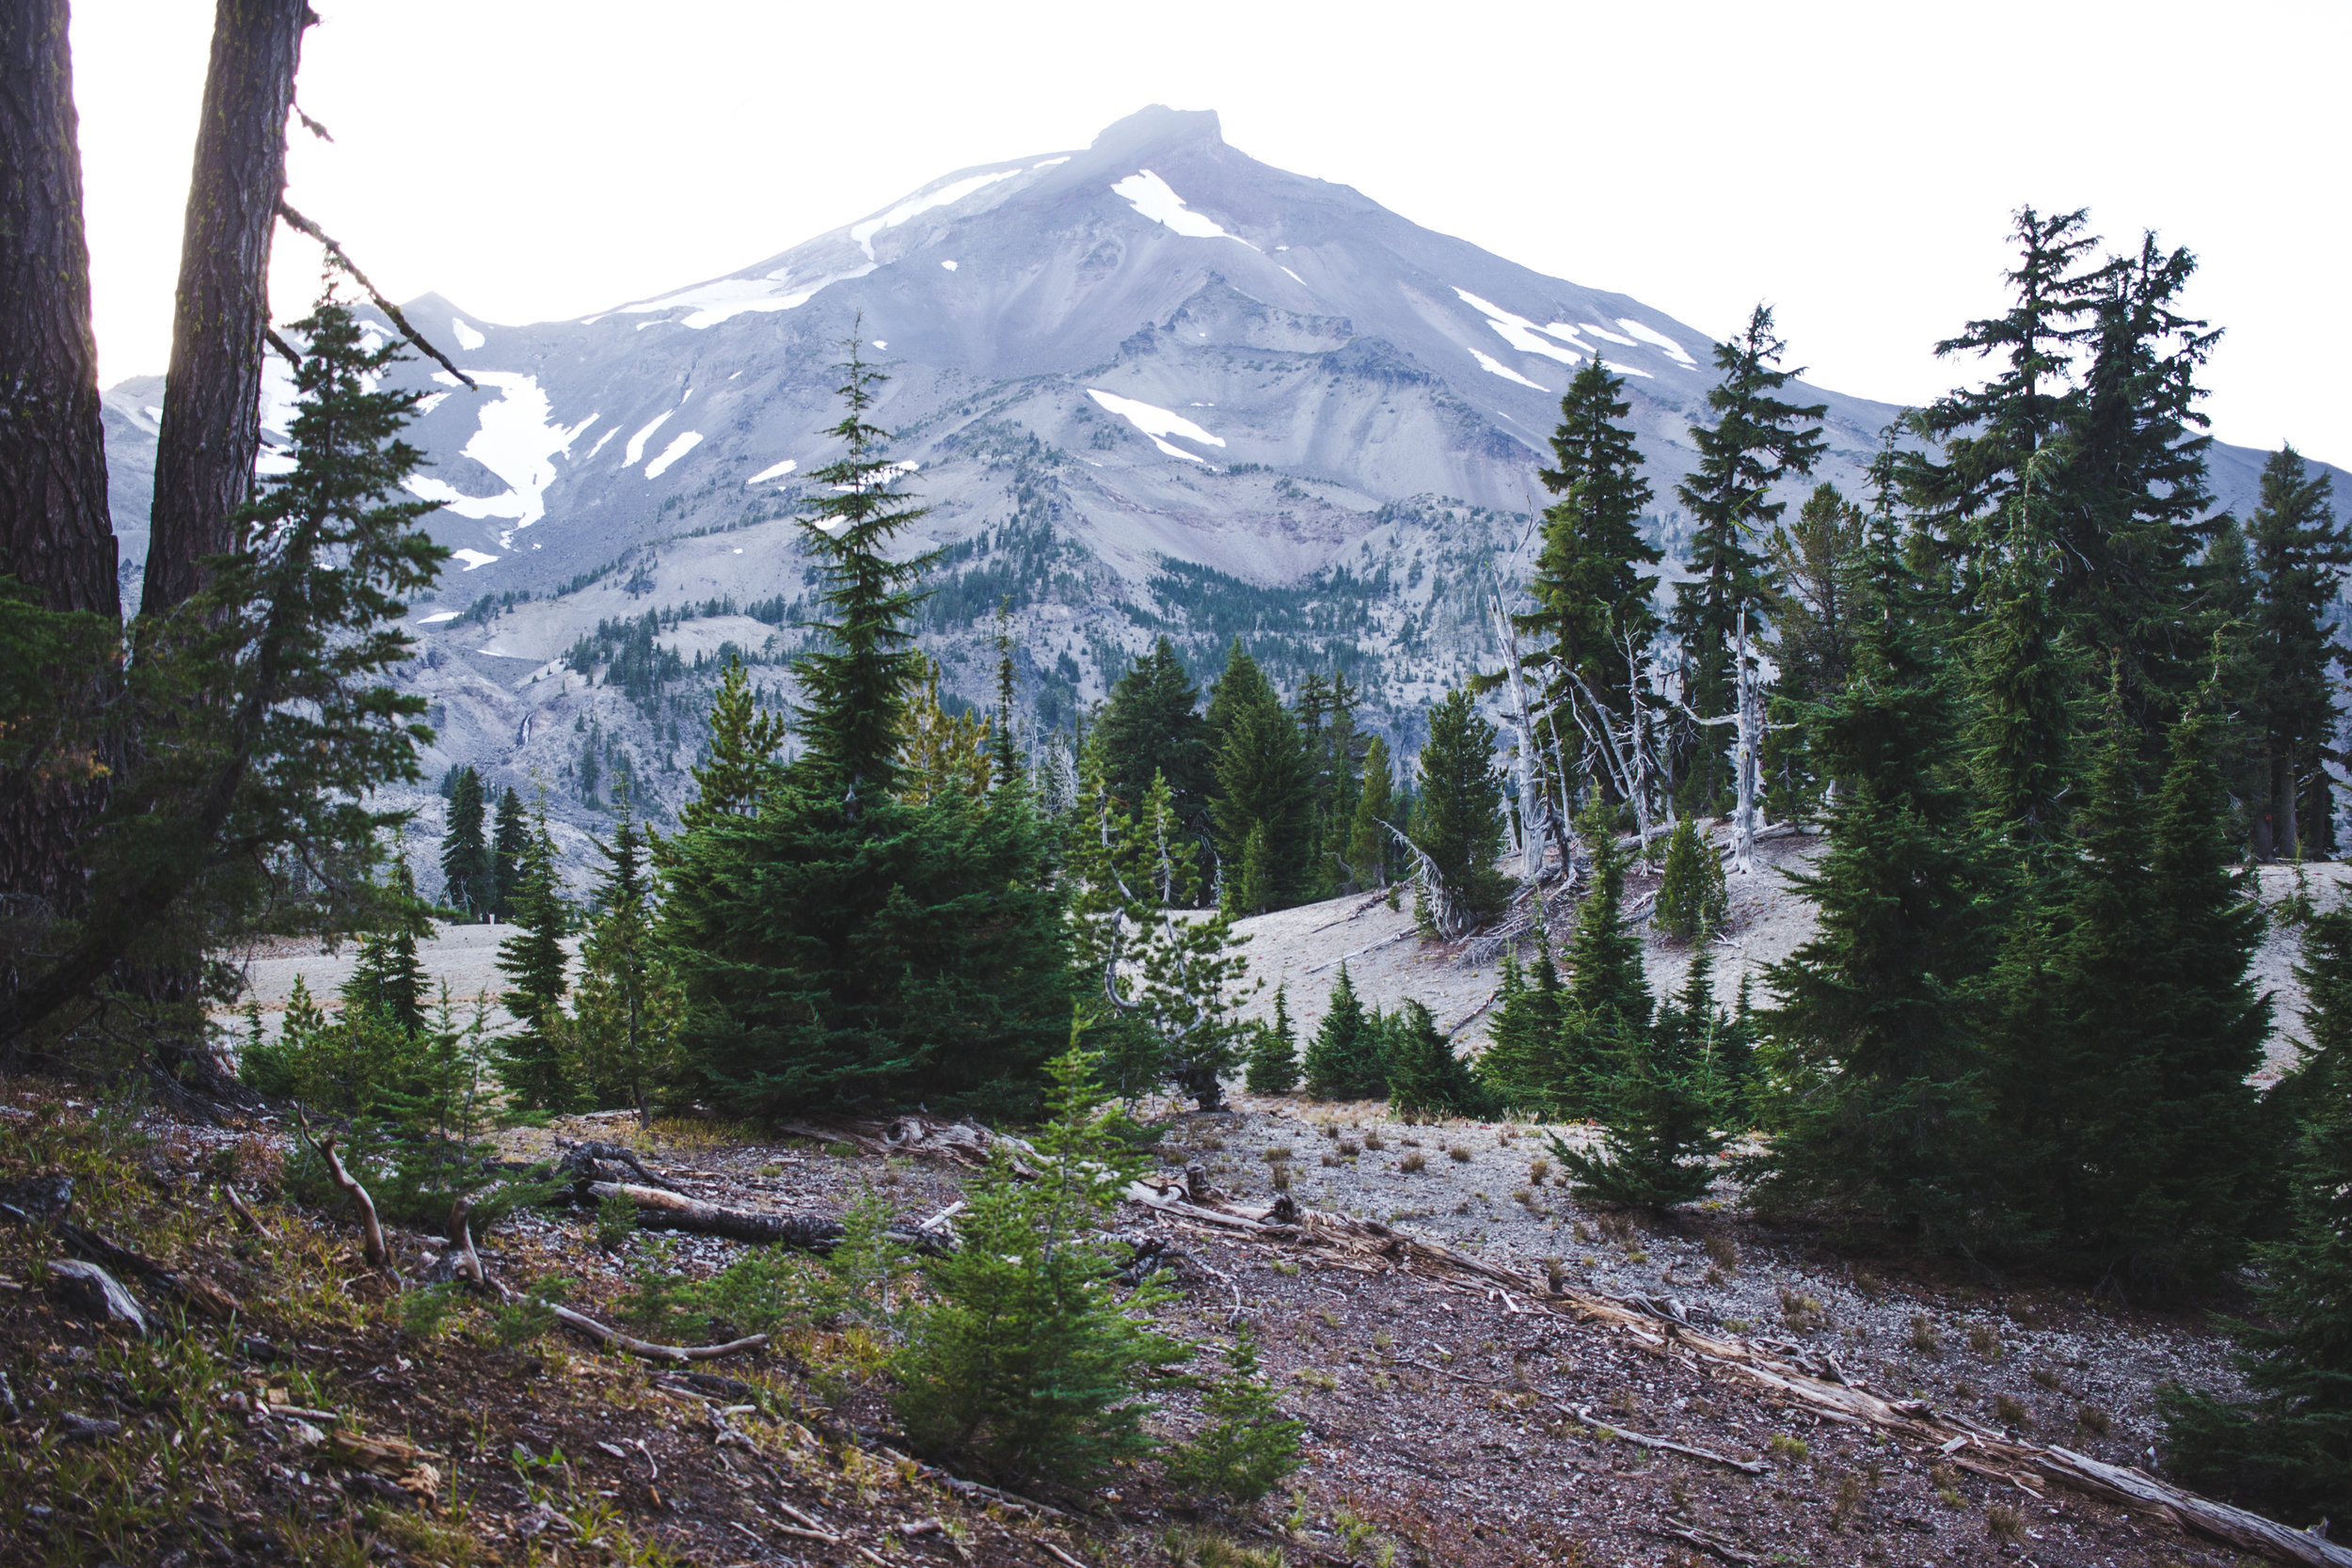 BACKPACKS AND SOUTH SISTER: PART TWO